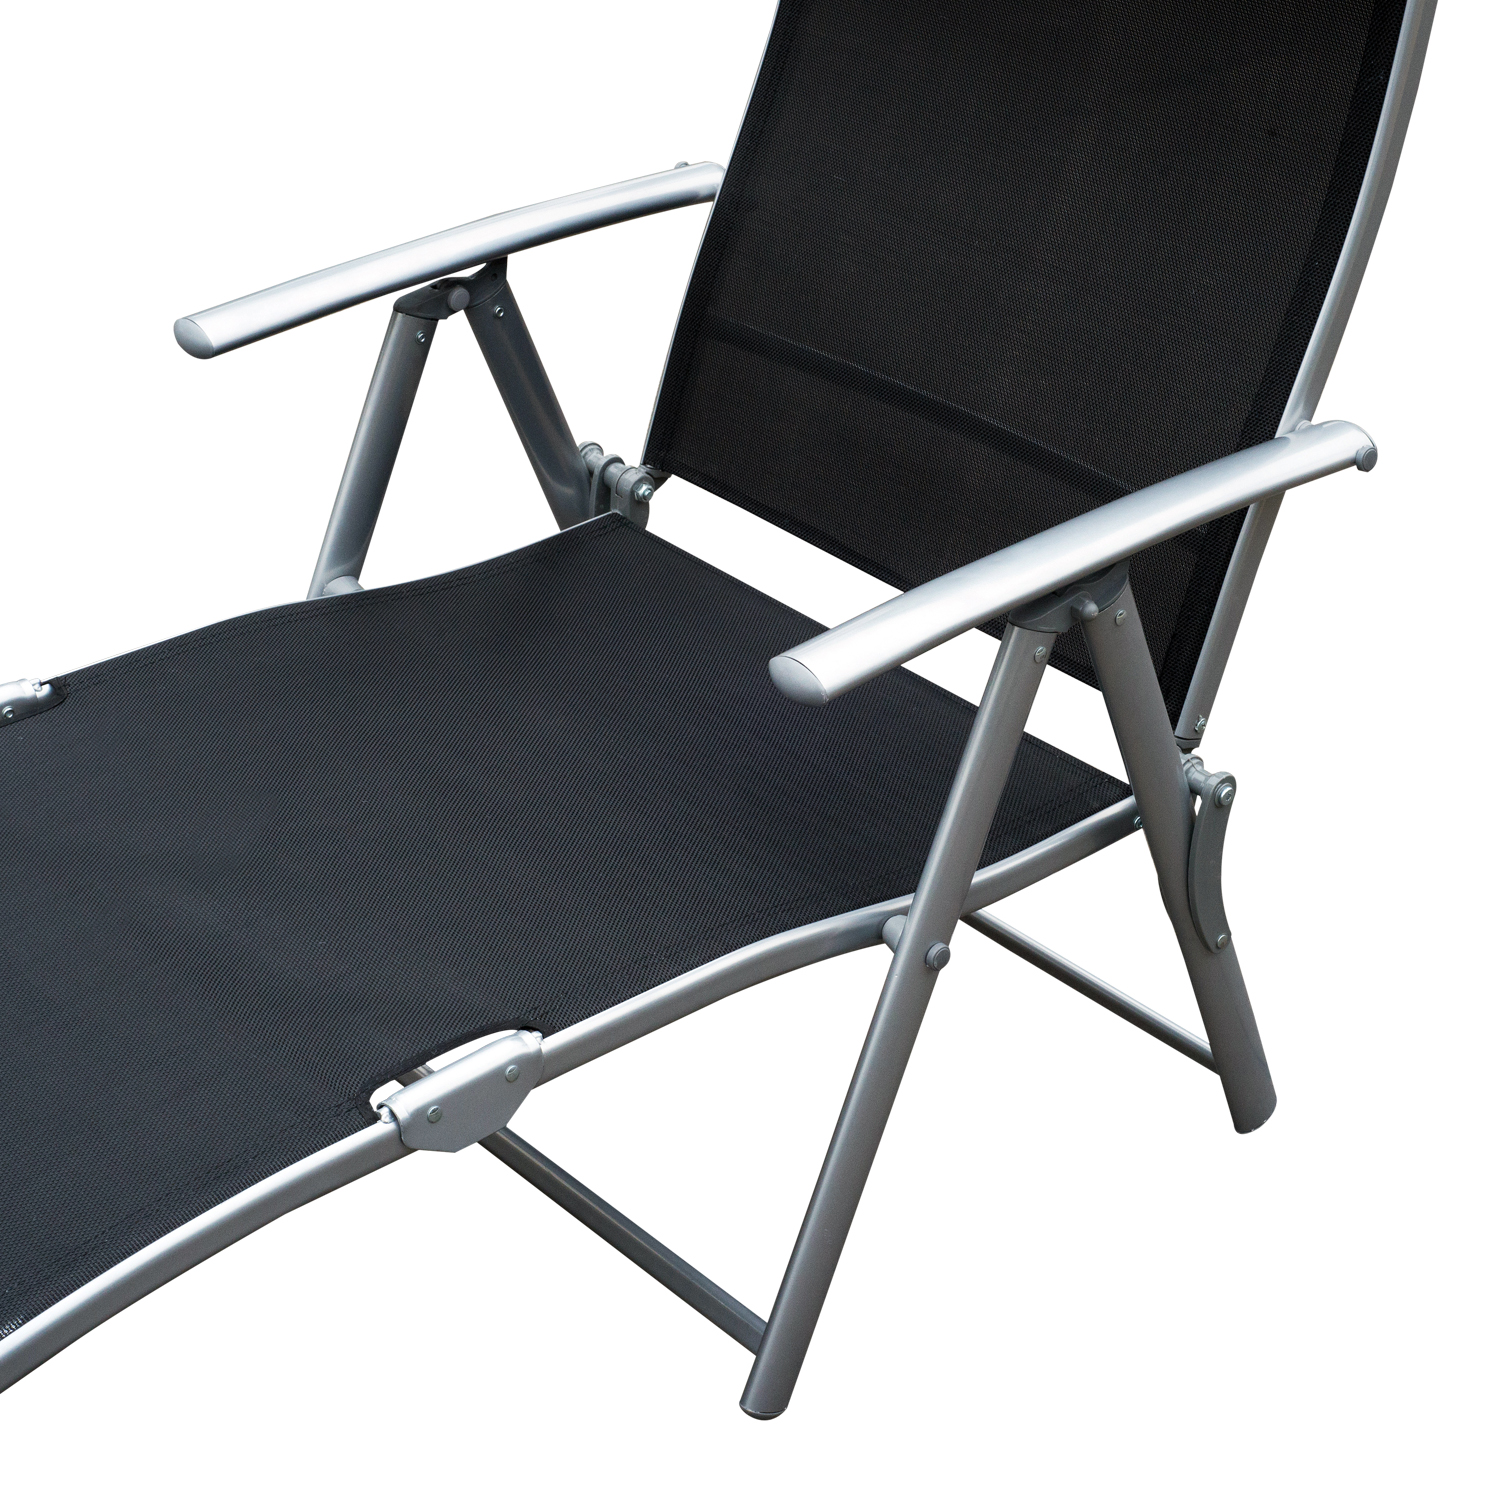 chaise lounge chair folding pool beach yard adjustable patio furniture recliner ebay. Black Bedroom Furniture Sets. Home Design Ideas